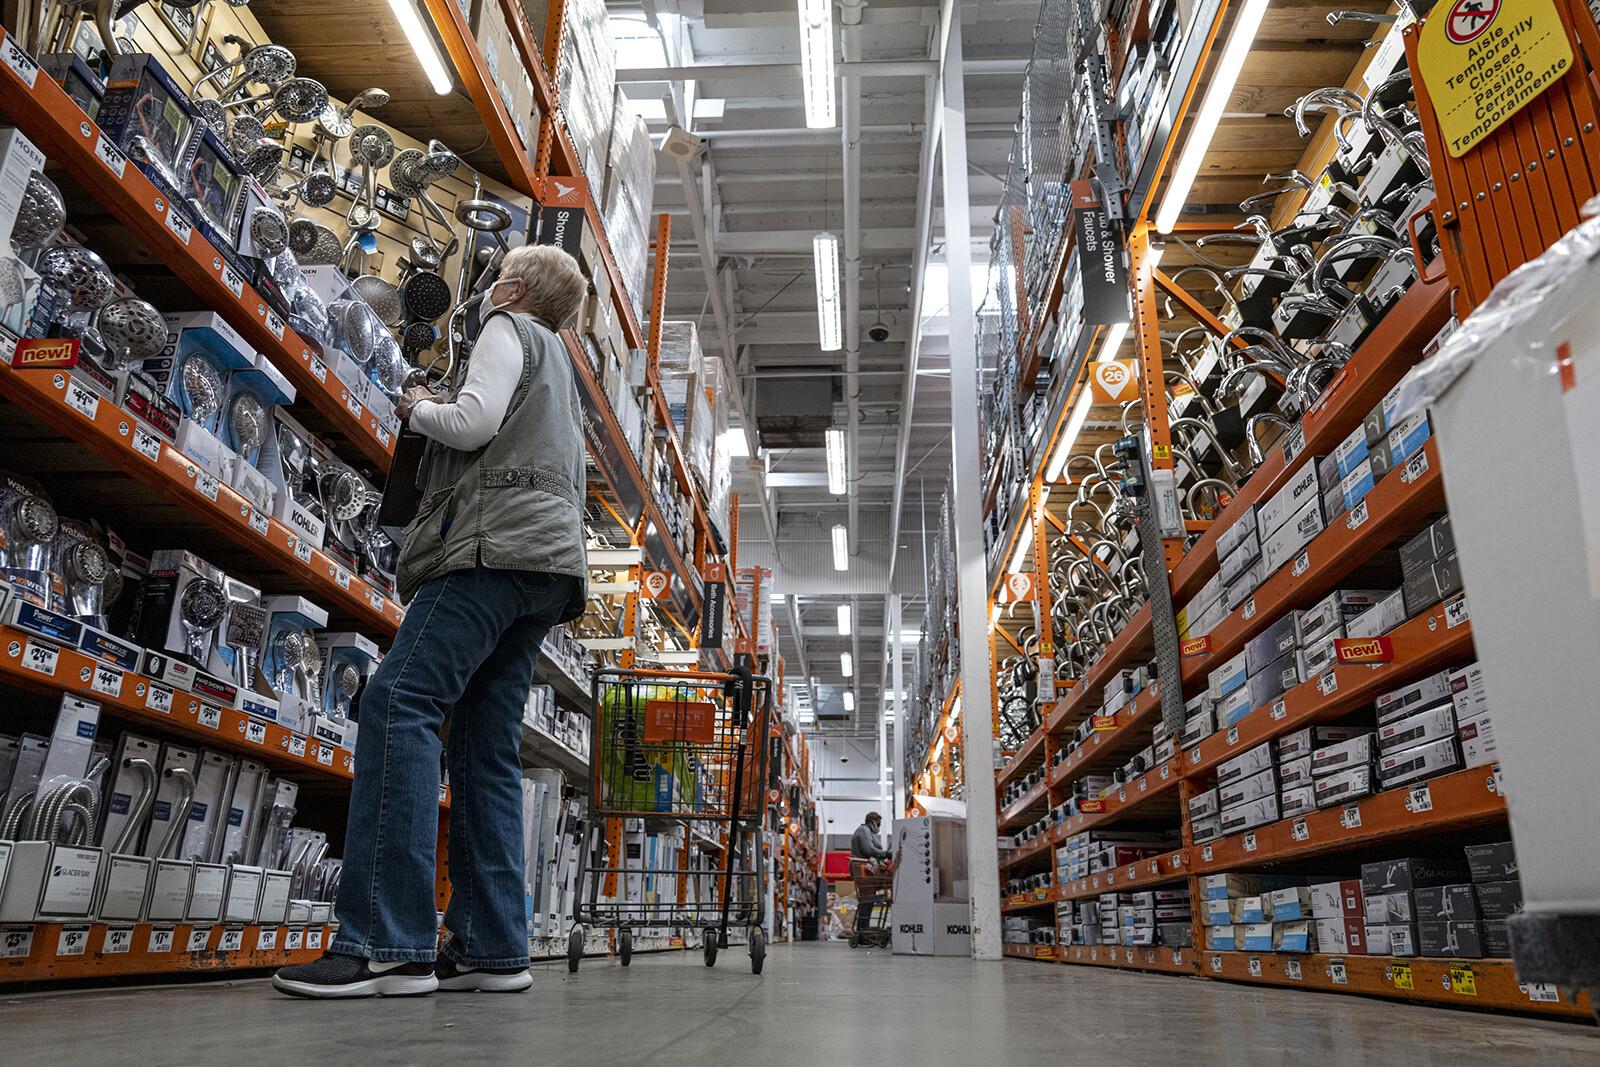 Ordering a power tool from Home Depot? Walmart may be the one delivering it to you